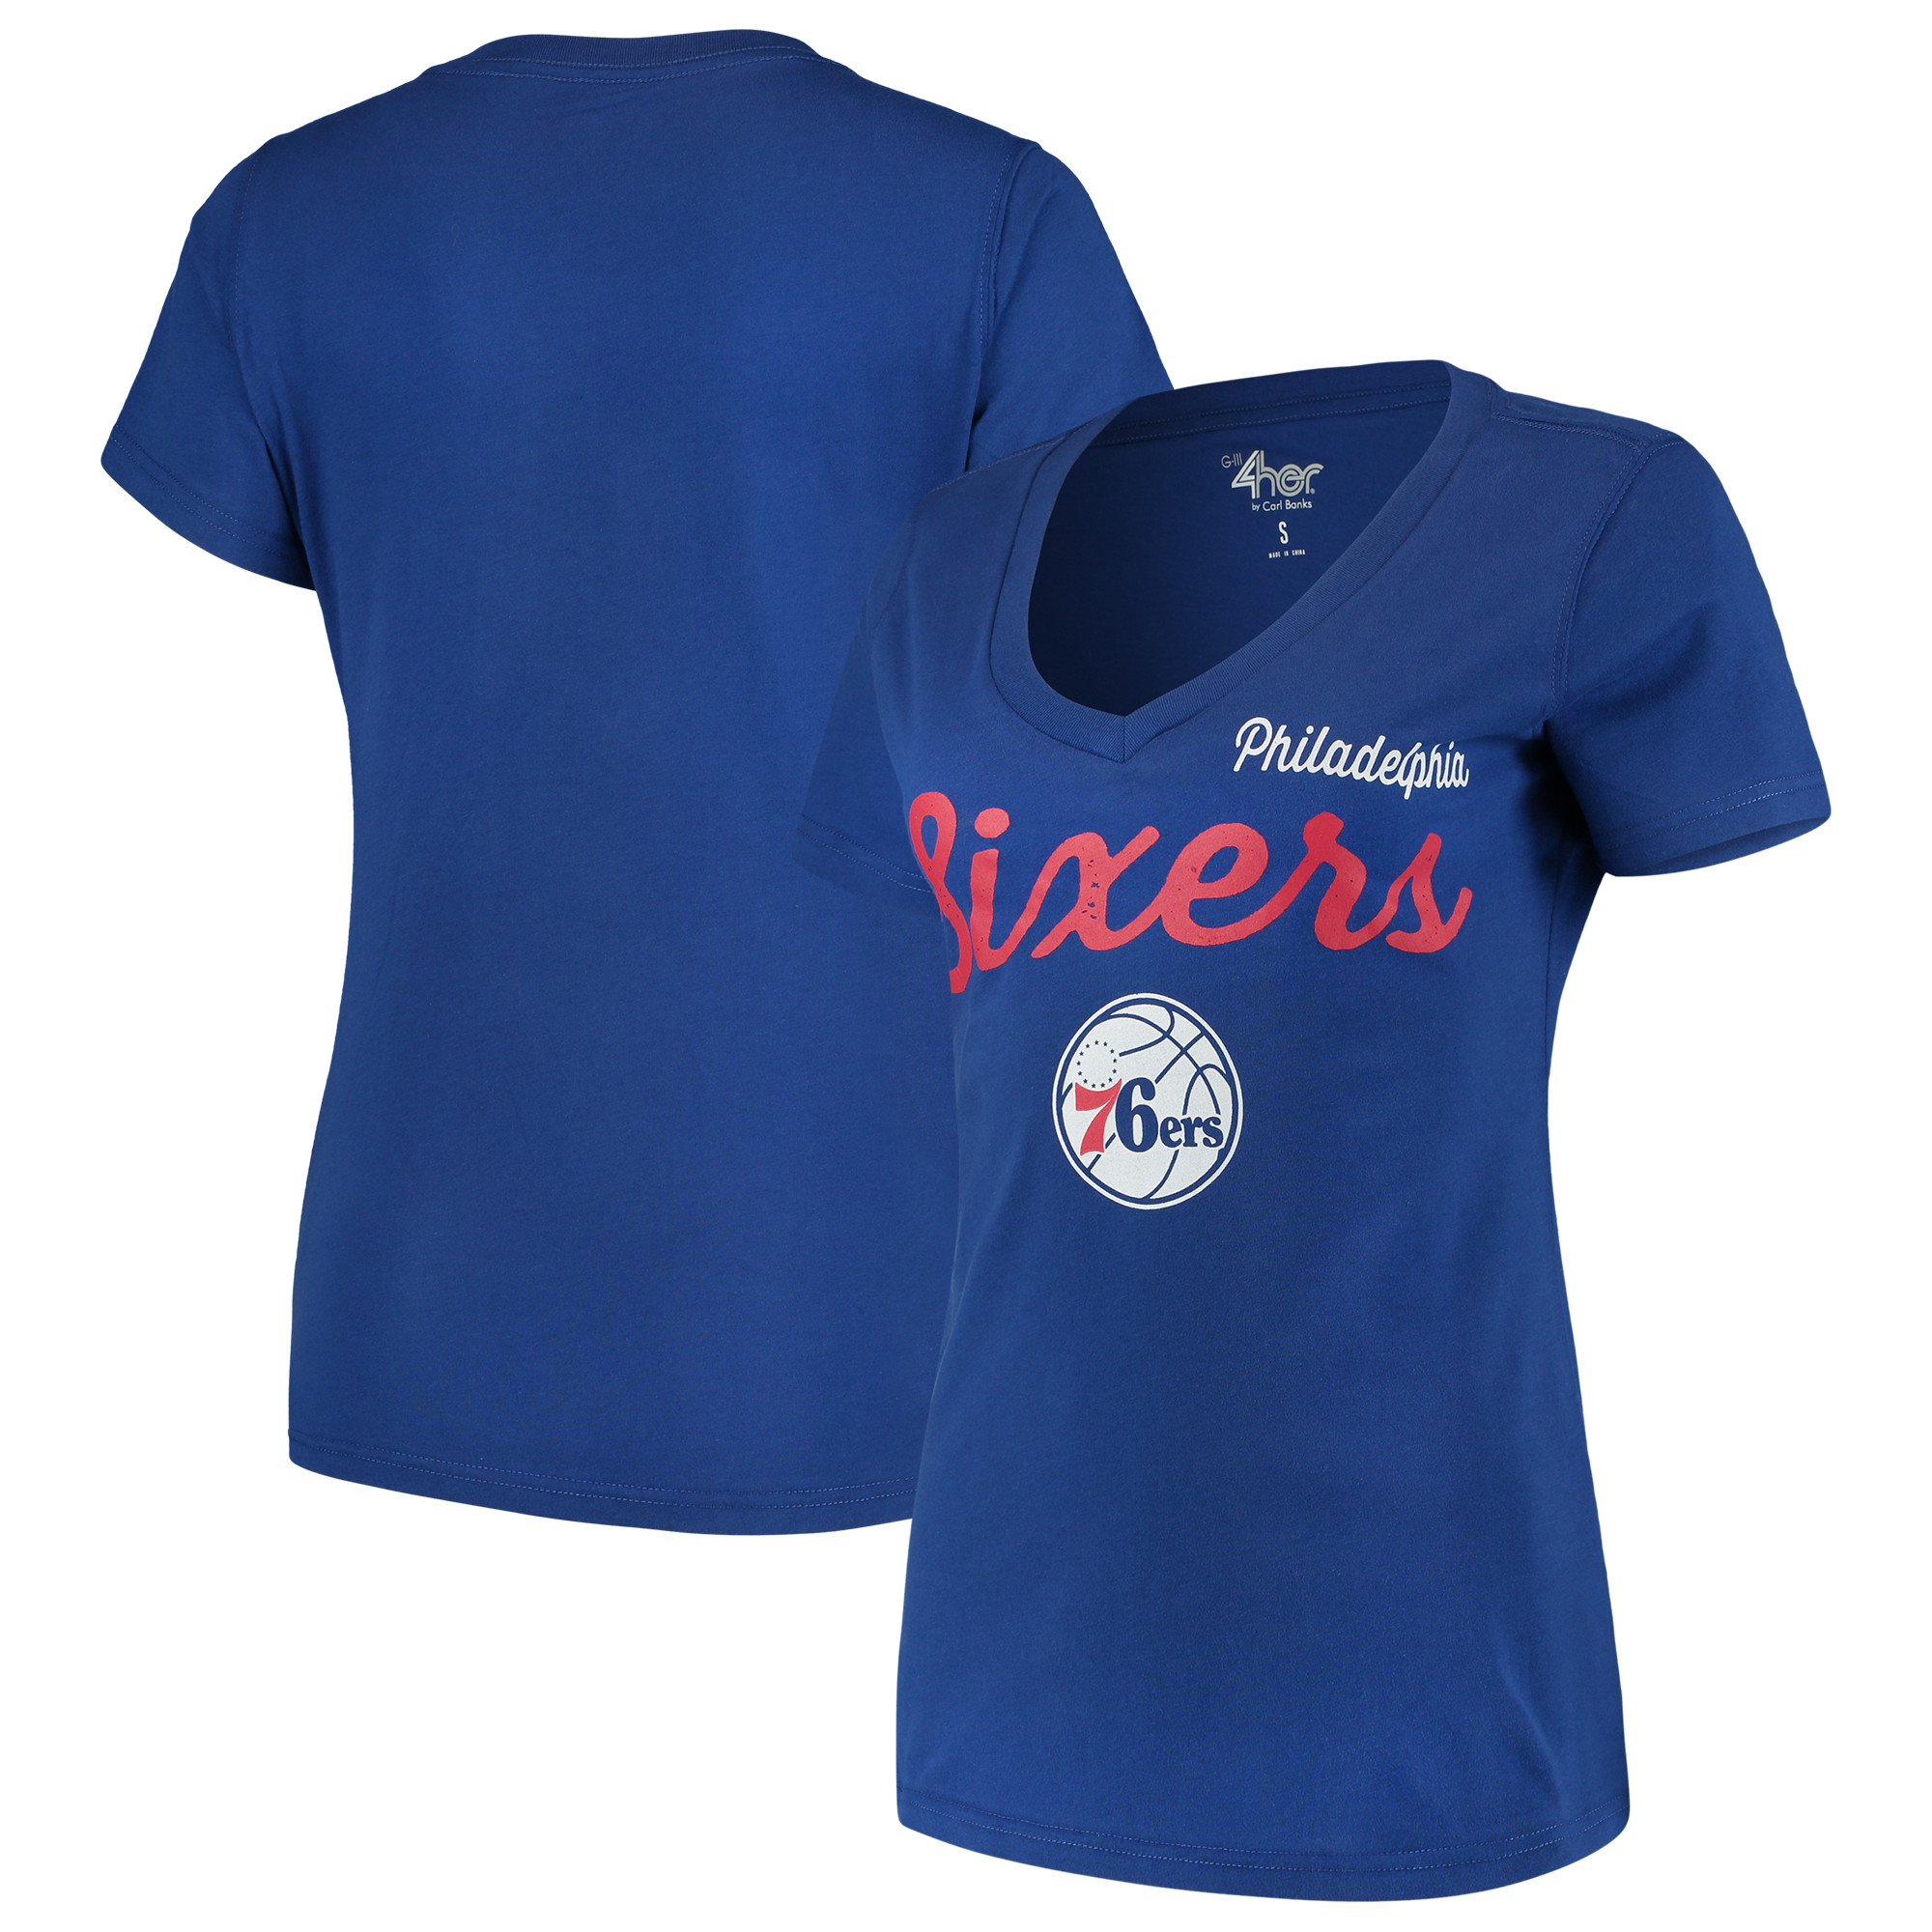 Philadelphia 76ers G-III 4Her by Carl Banks Women's Post Season V-Neck Short Sleeve T-Shirt - Blue